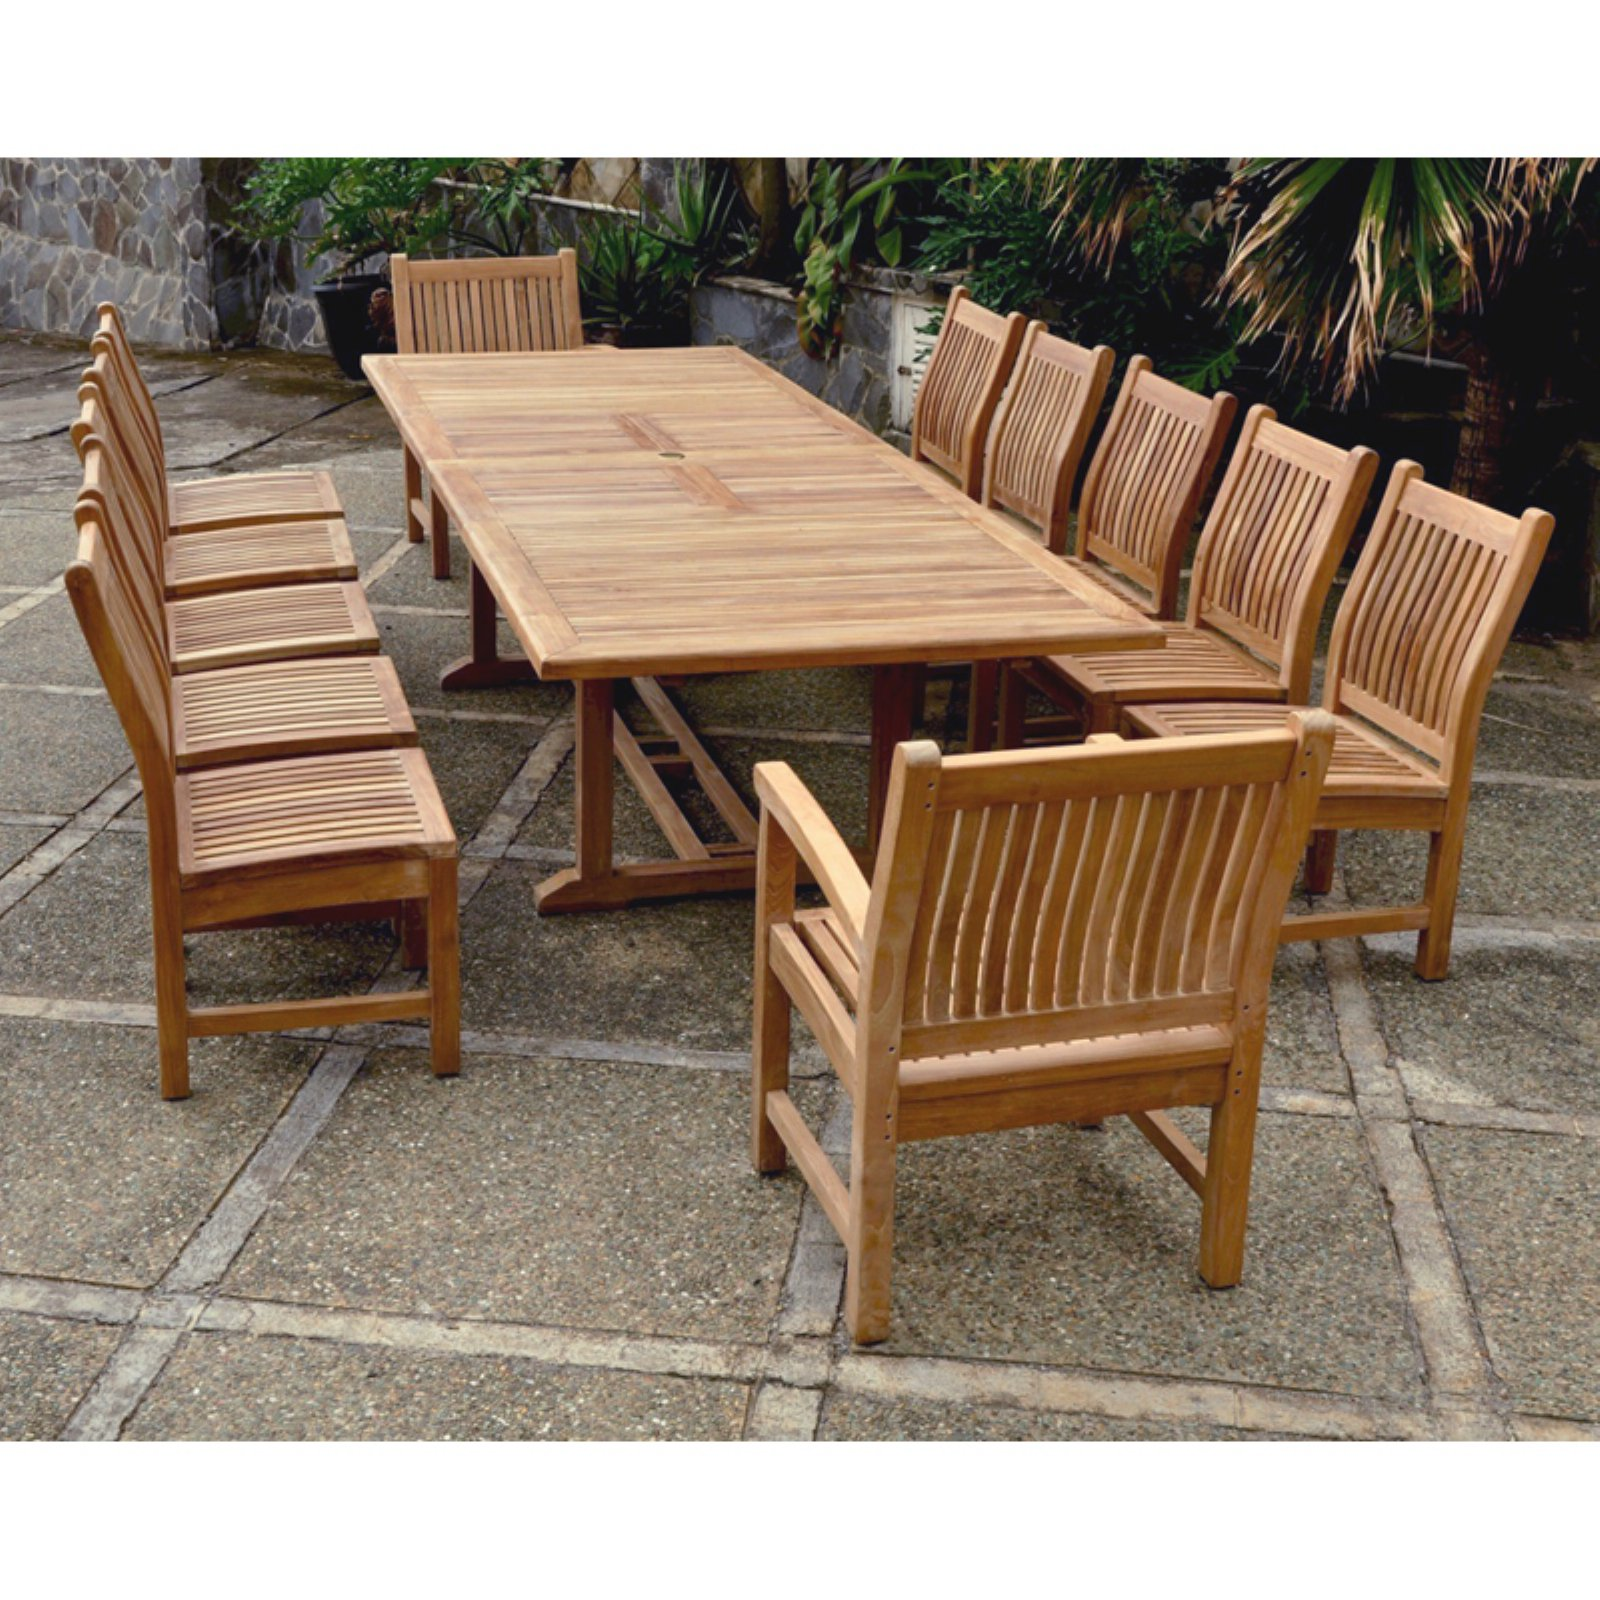 Anderson Teak Sahara 13 Piece Patio Dining Room Set by Teak Etc LLC